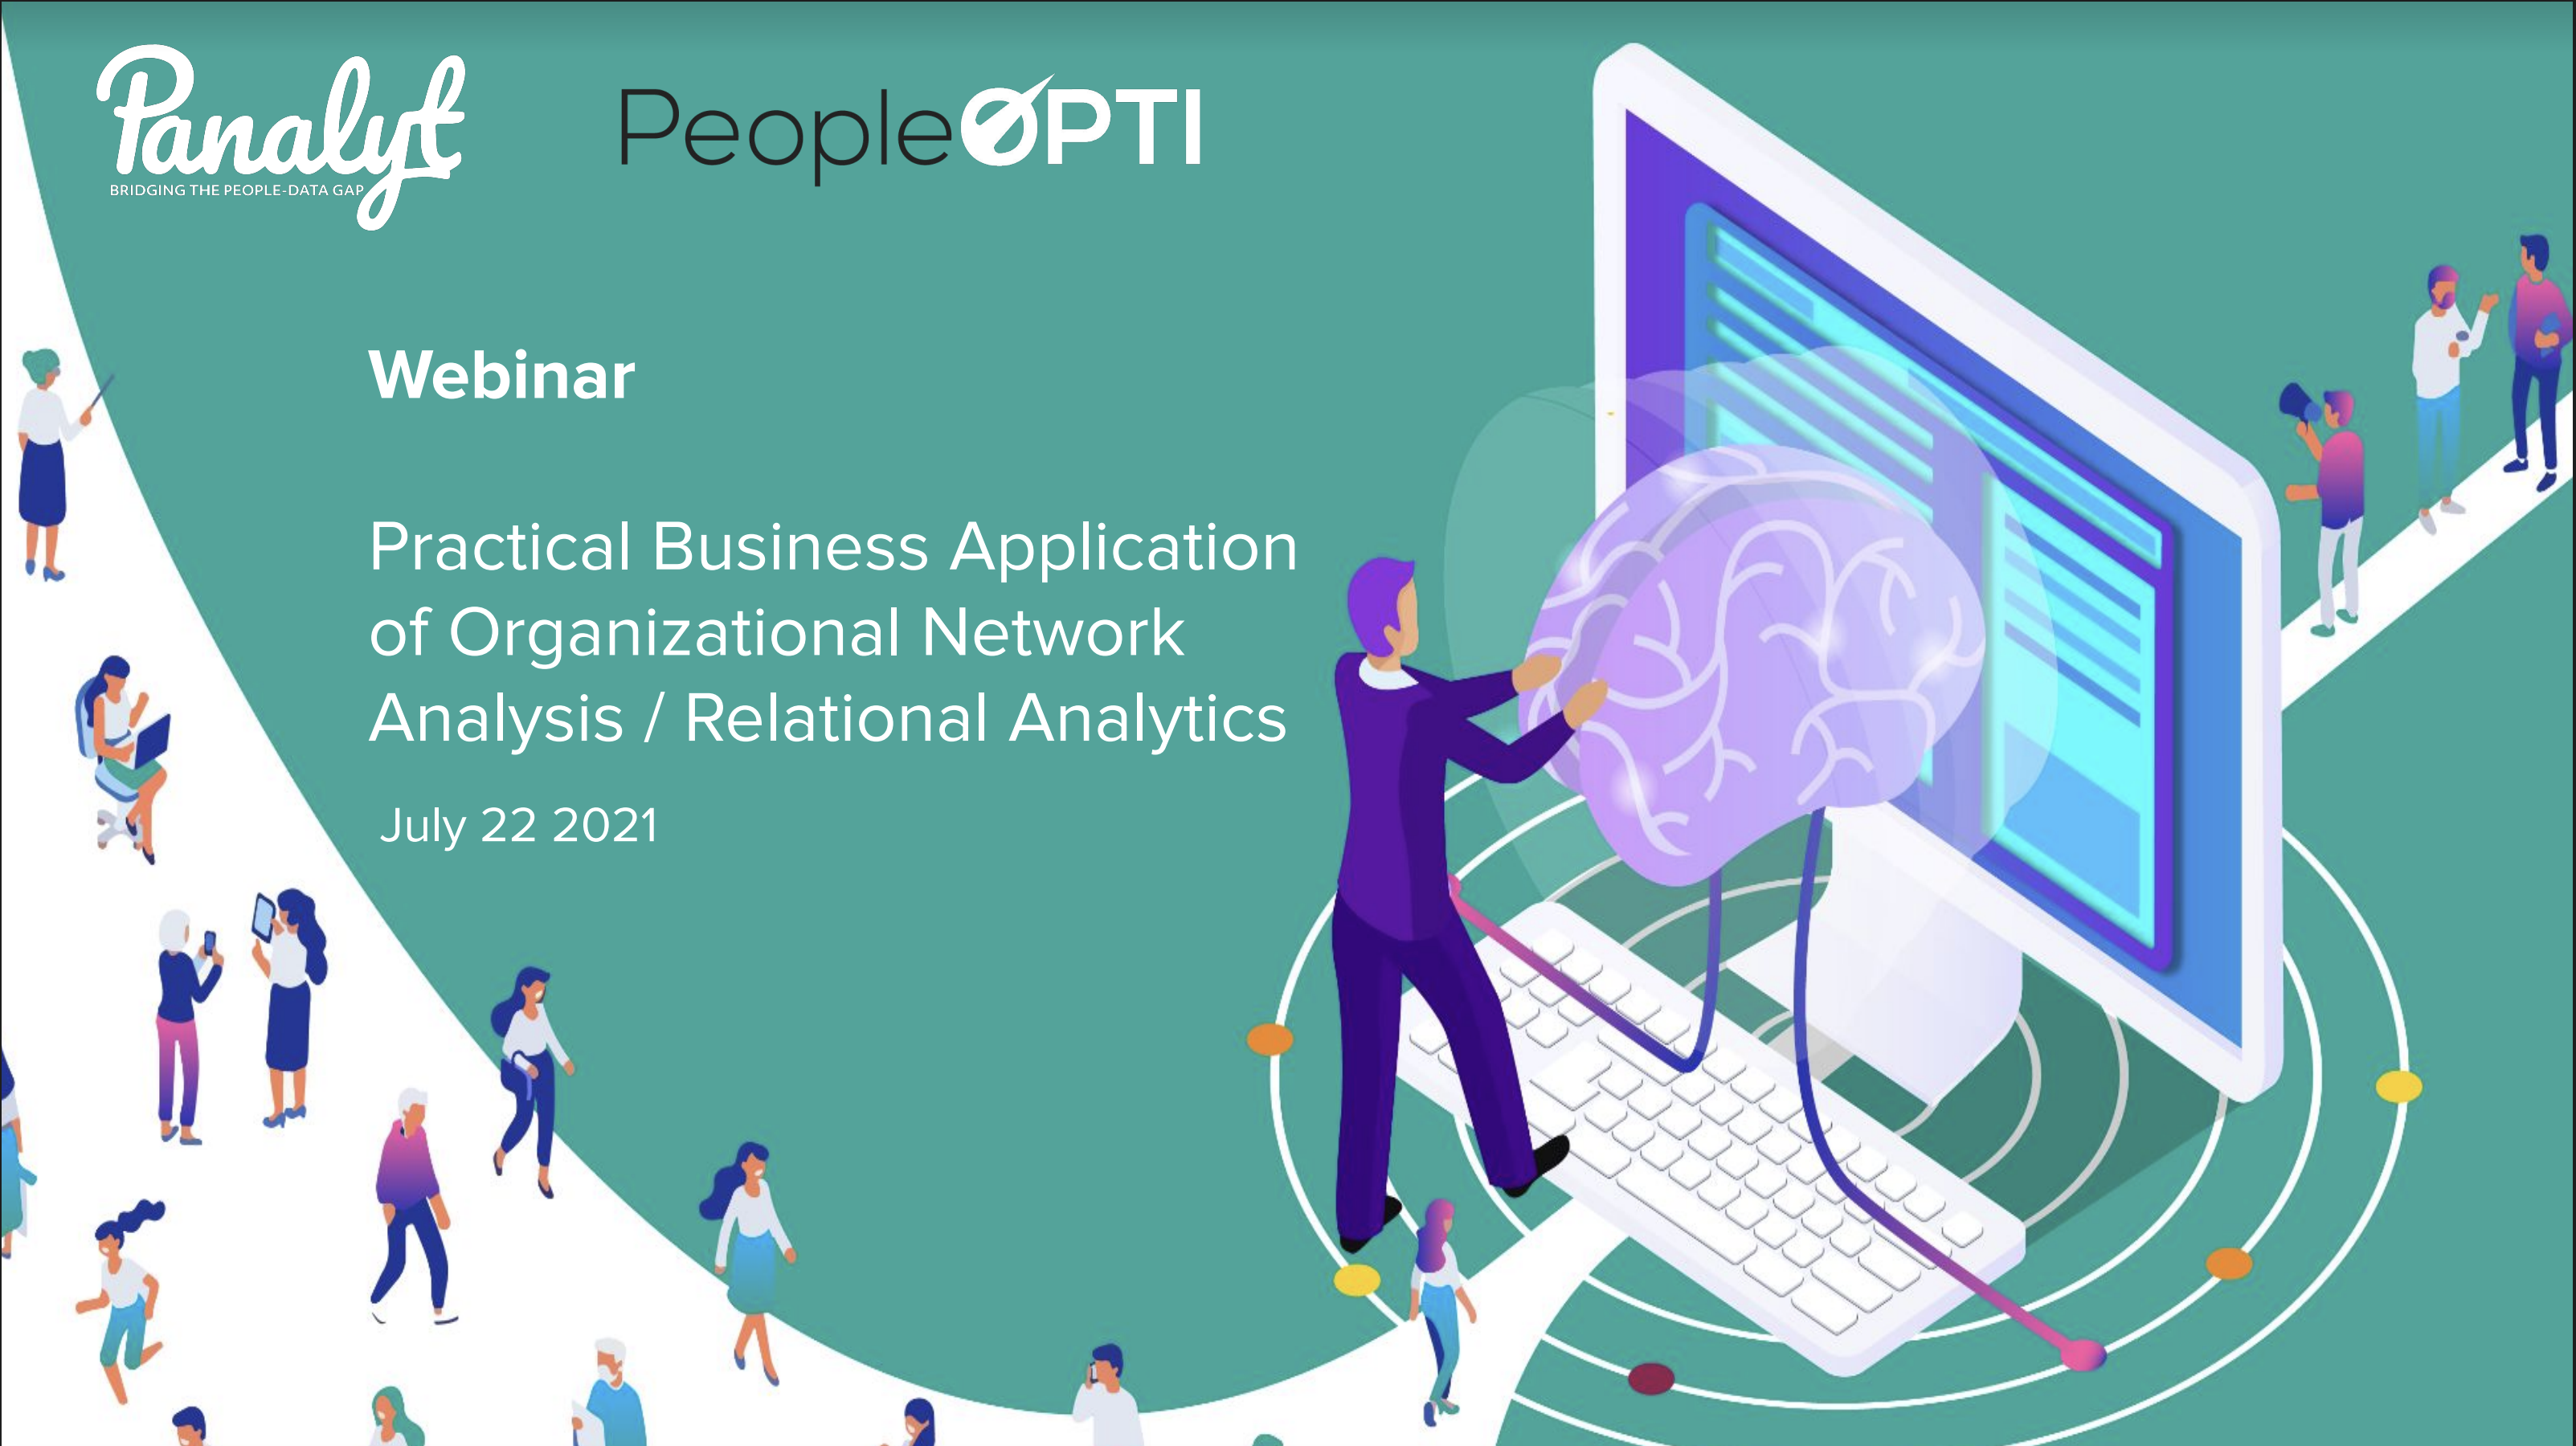 Practical Business Applications of Organizational Network Analysis / Relational Analytics